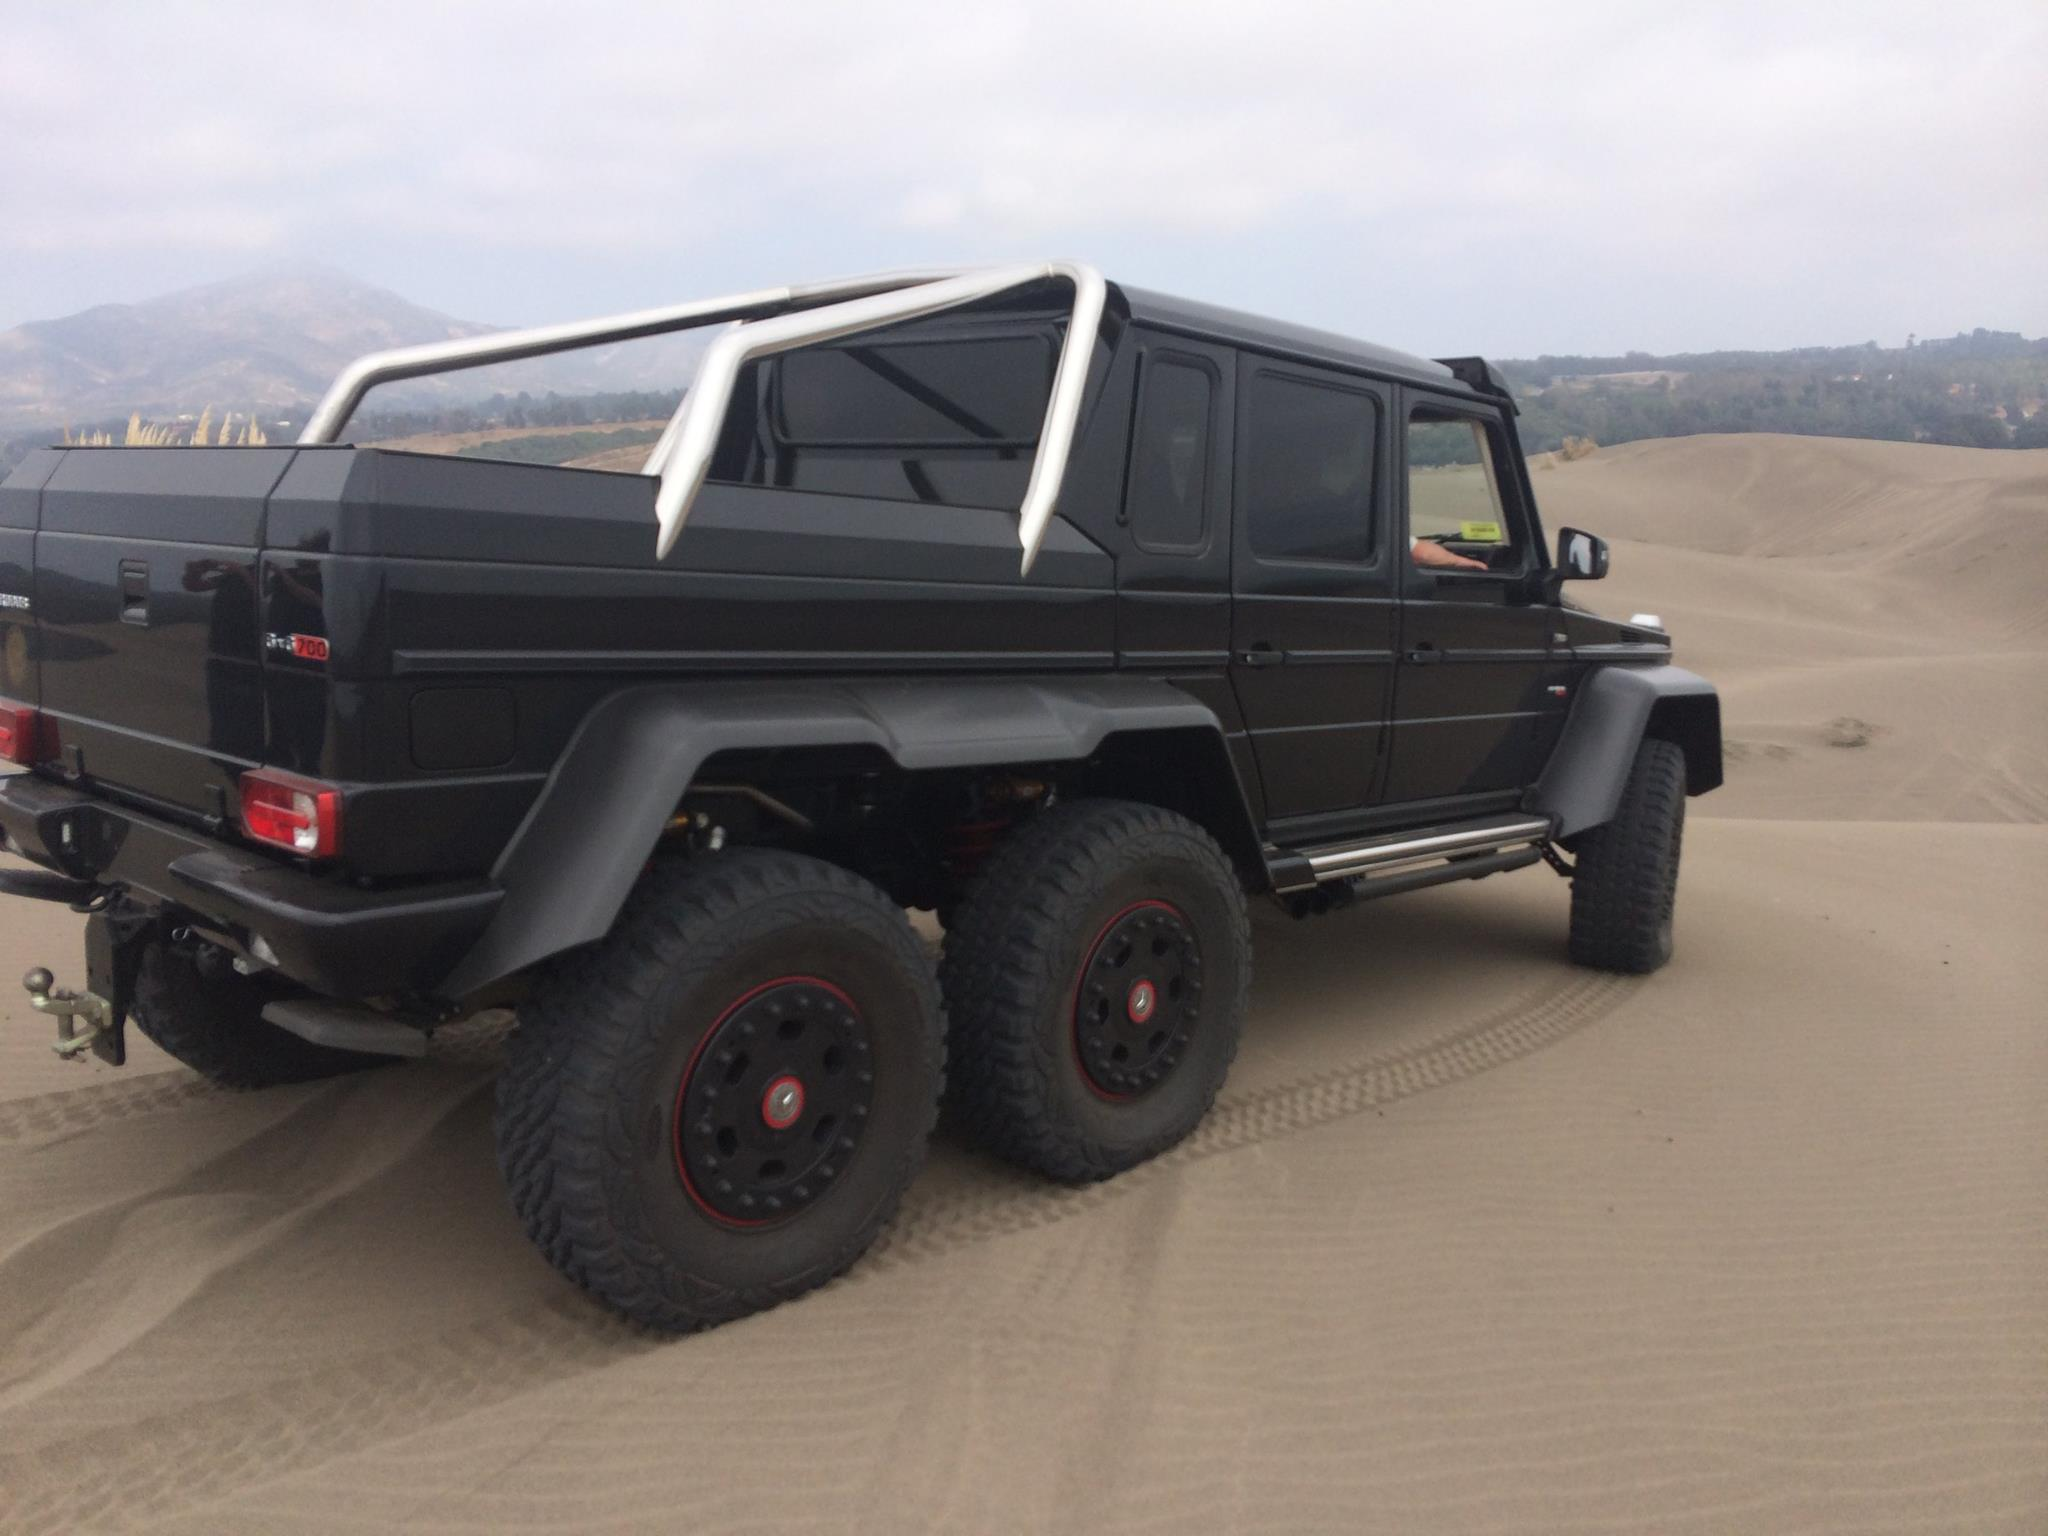 Brabus G63 Amg 6x6 Surfs Sand Dunes In Chile Photo